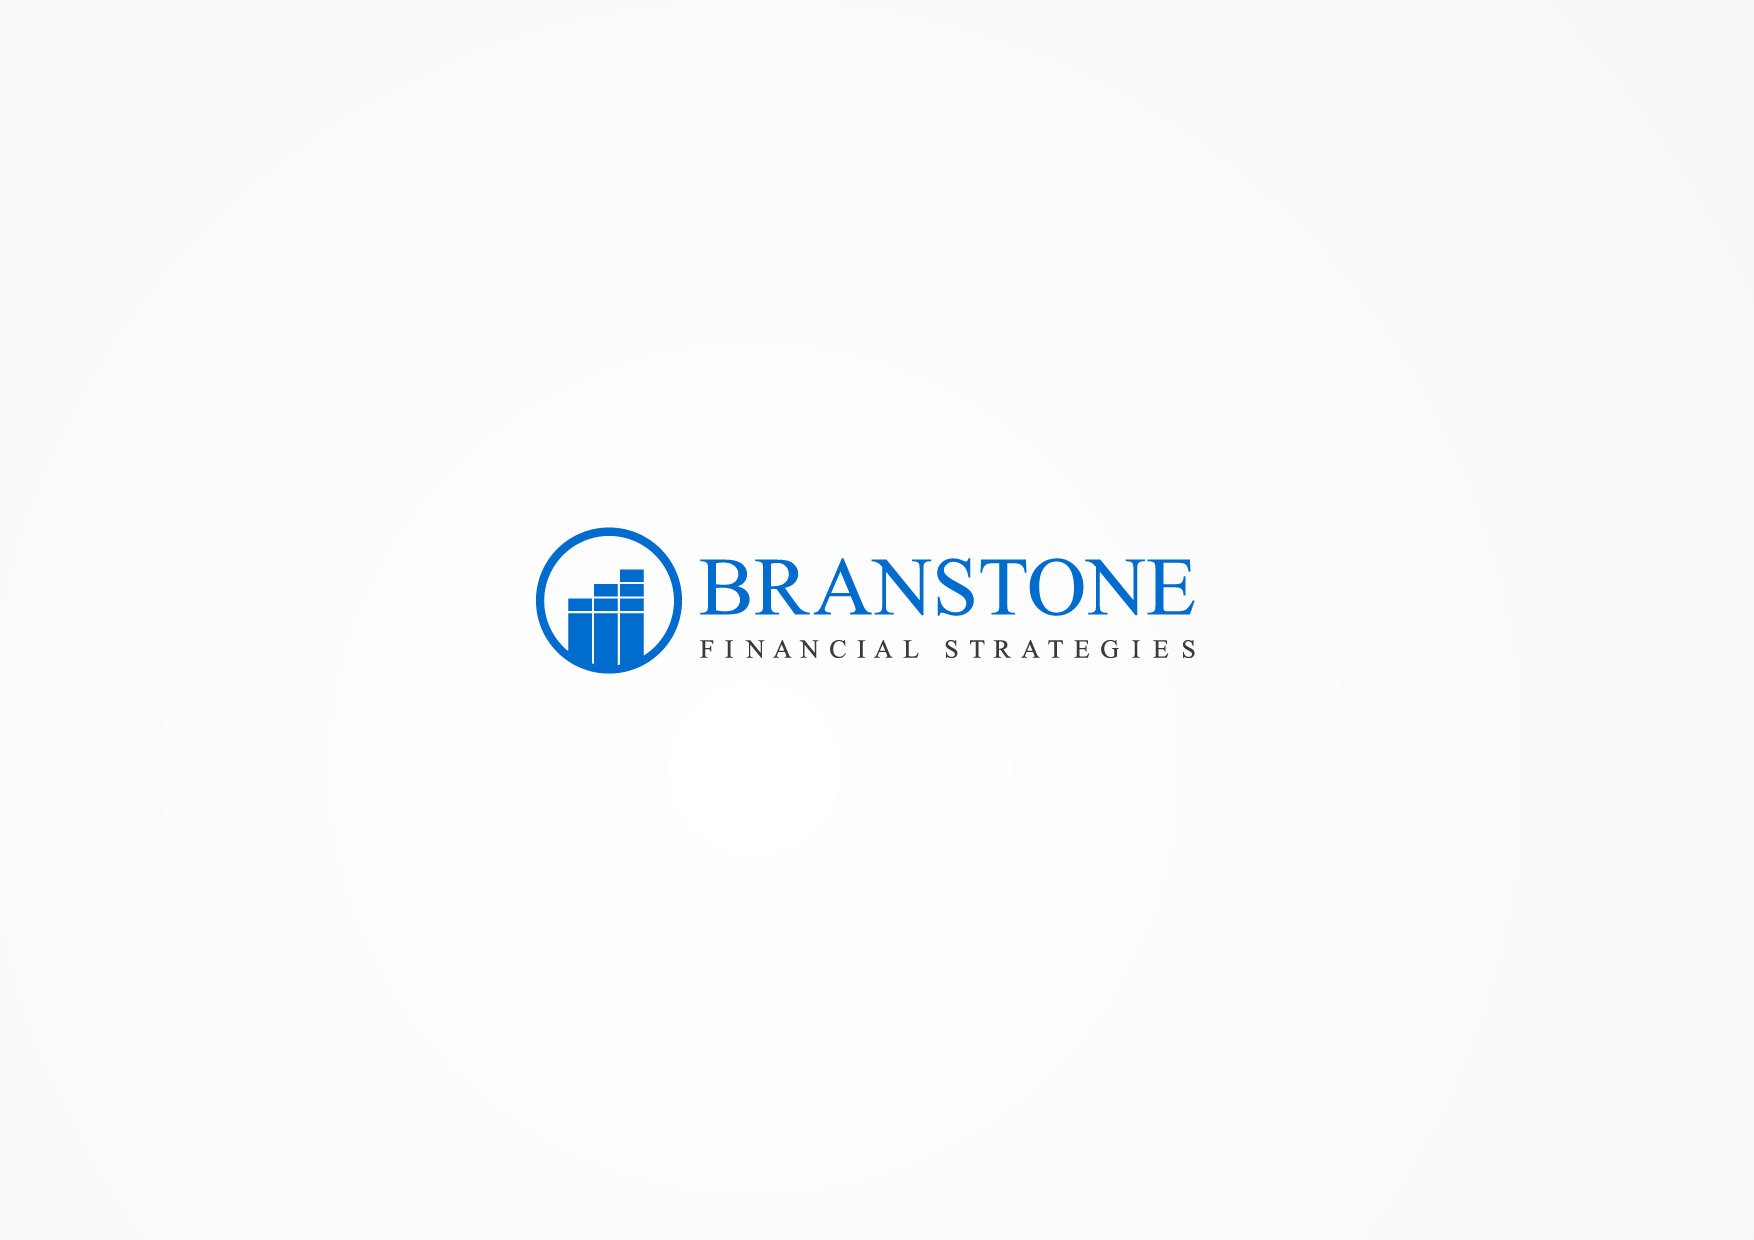 Logo Design by Osi Indra - Entry No. 93 in the Logo Design Contest Inspiring Logo Design for Branstone Financial Strategies.